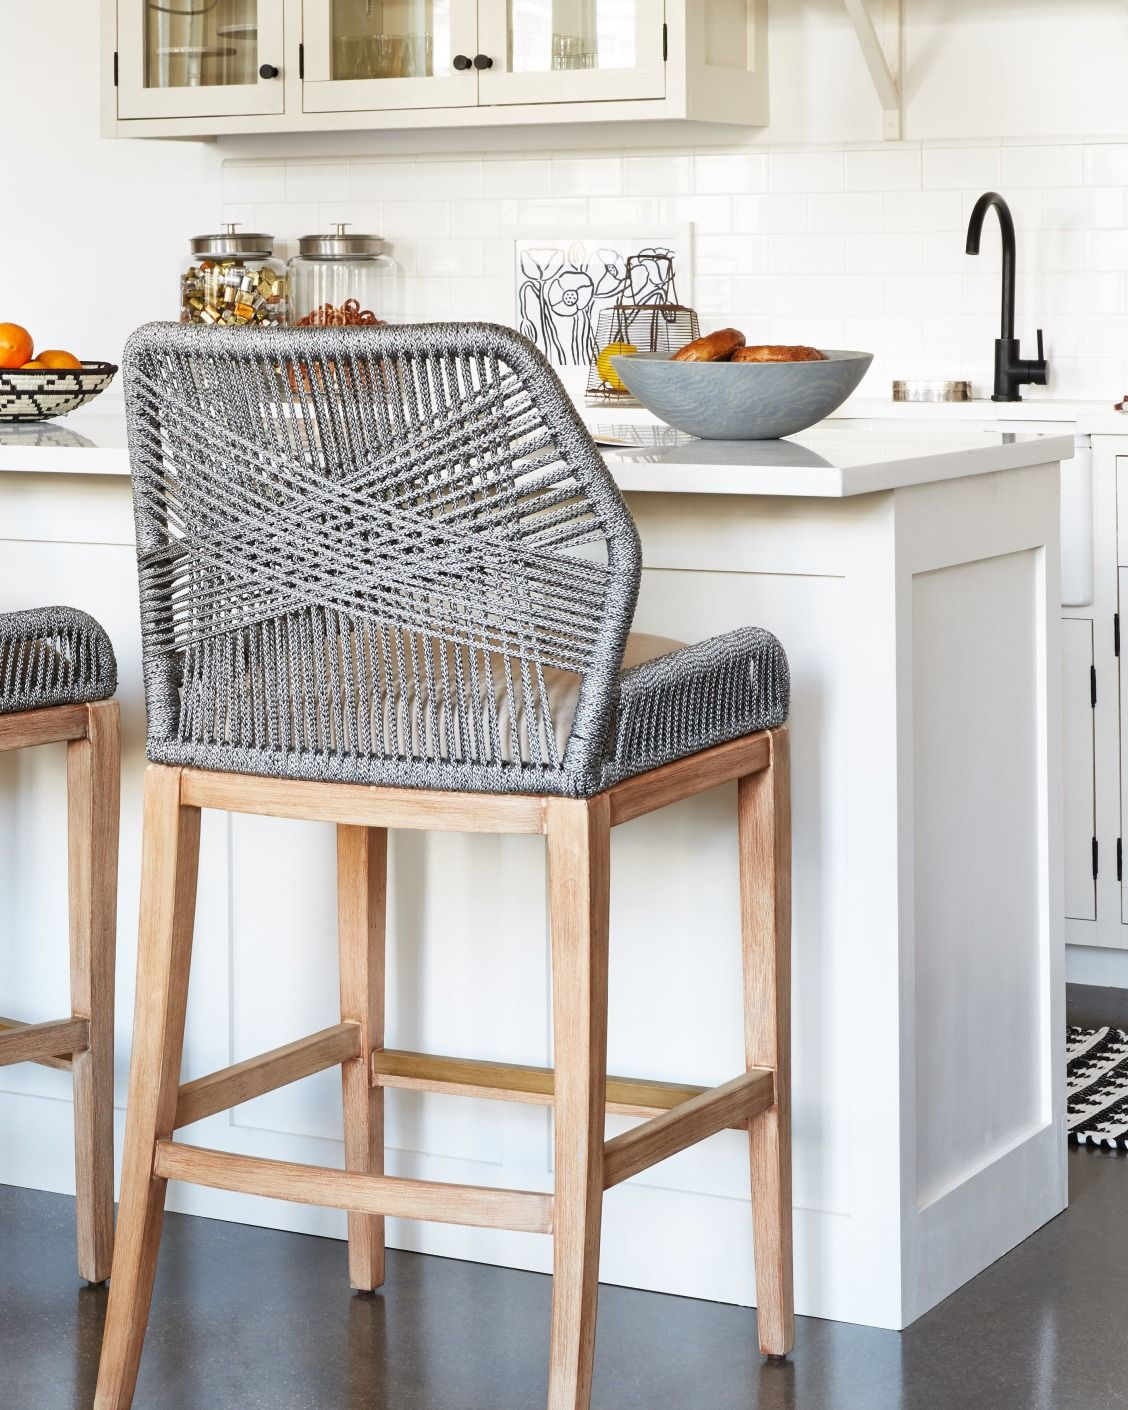 countertop stools kitchen lights for these woven rope counter are such a fun unexpected accent